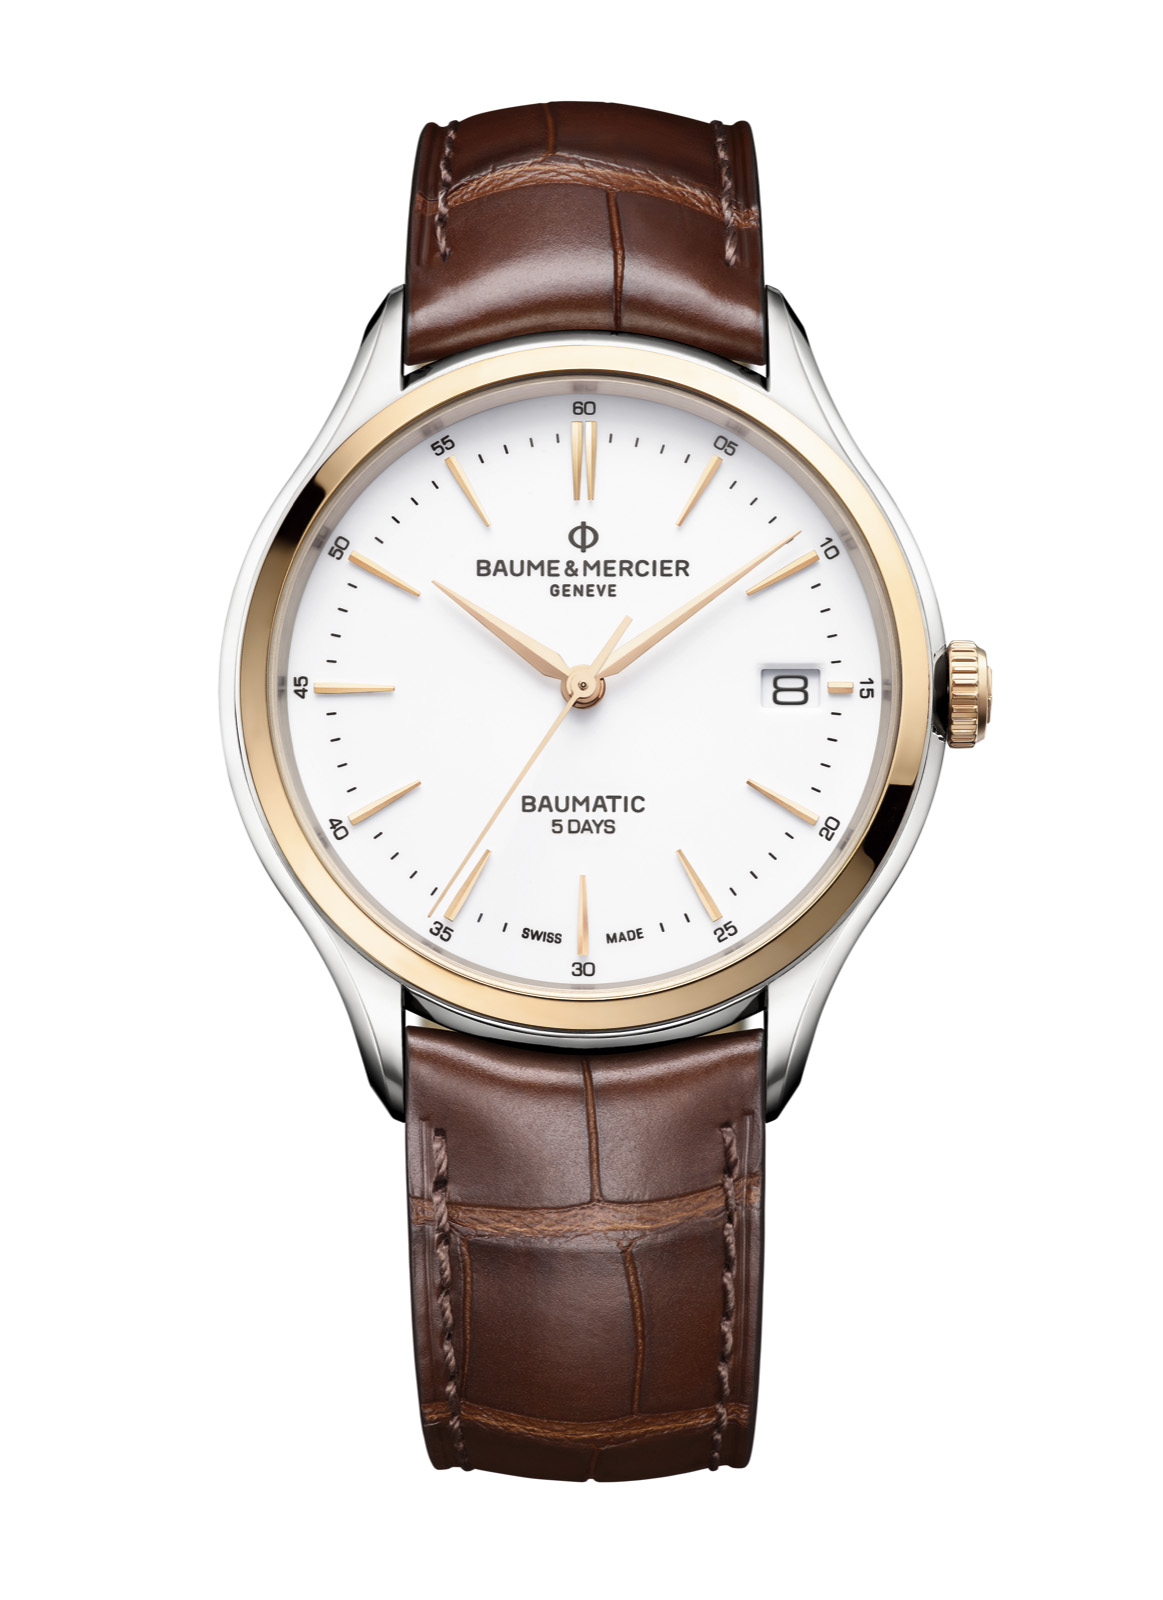 Baume & Mercier Baumatic 10401